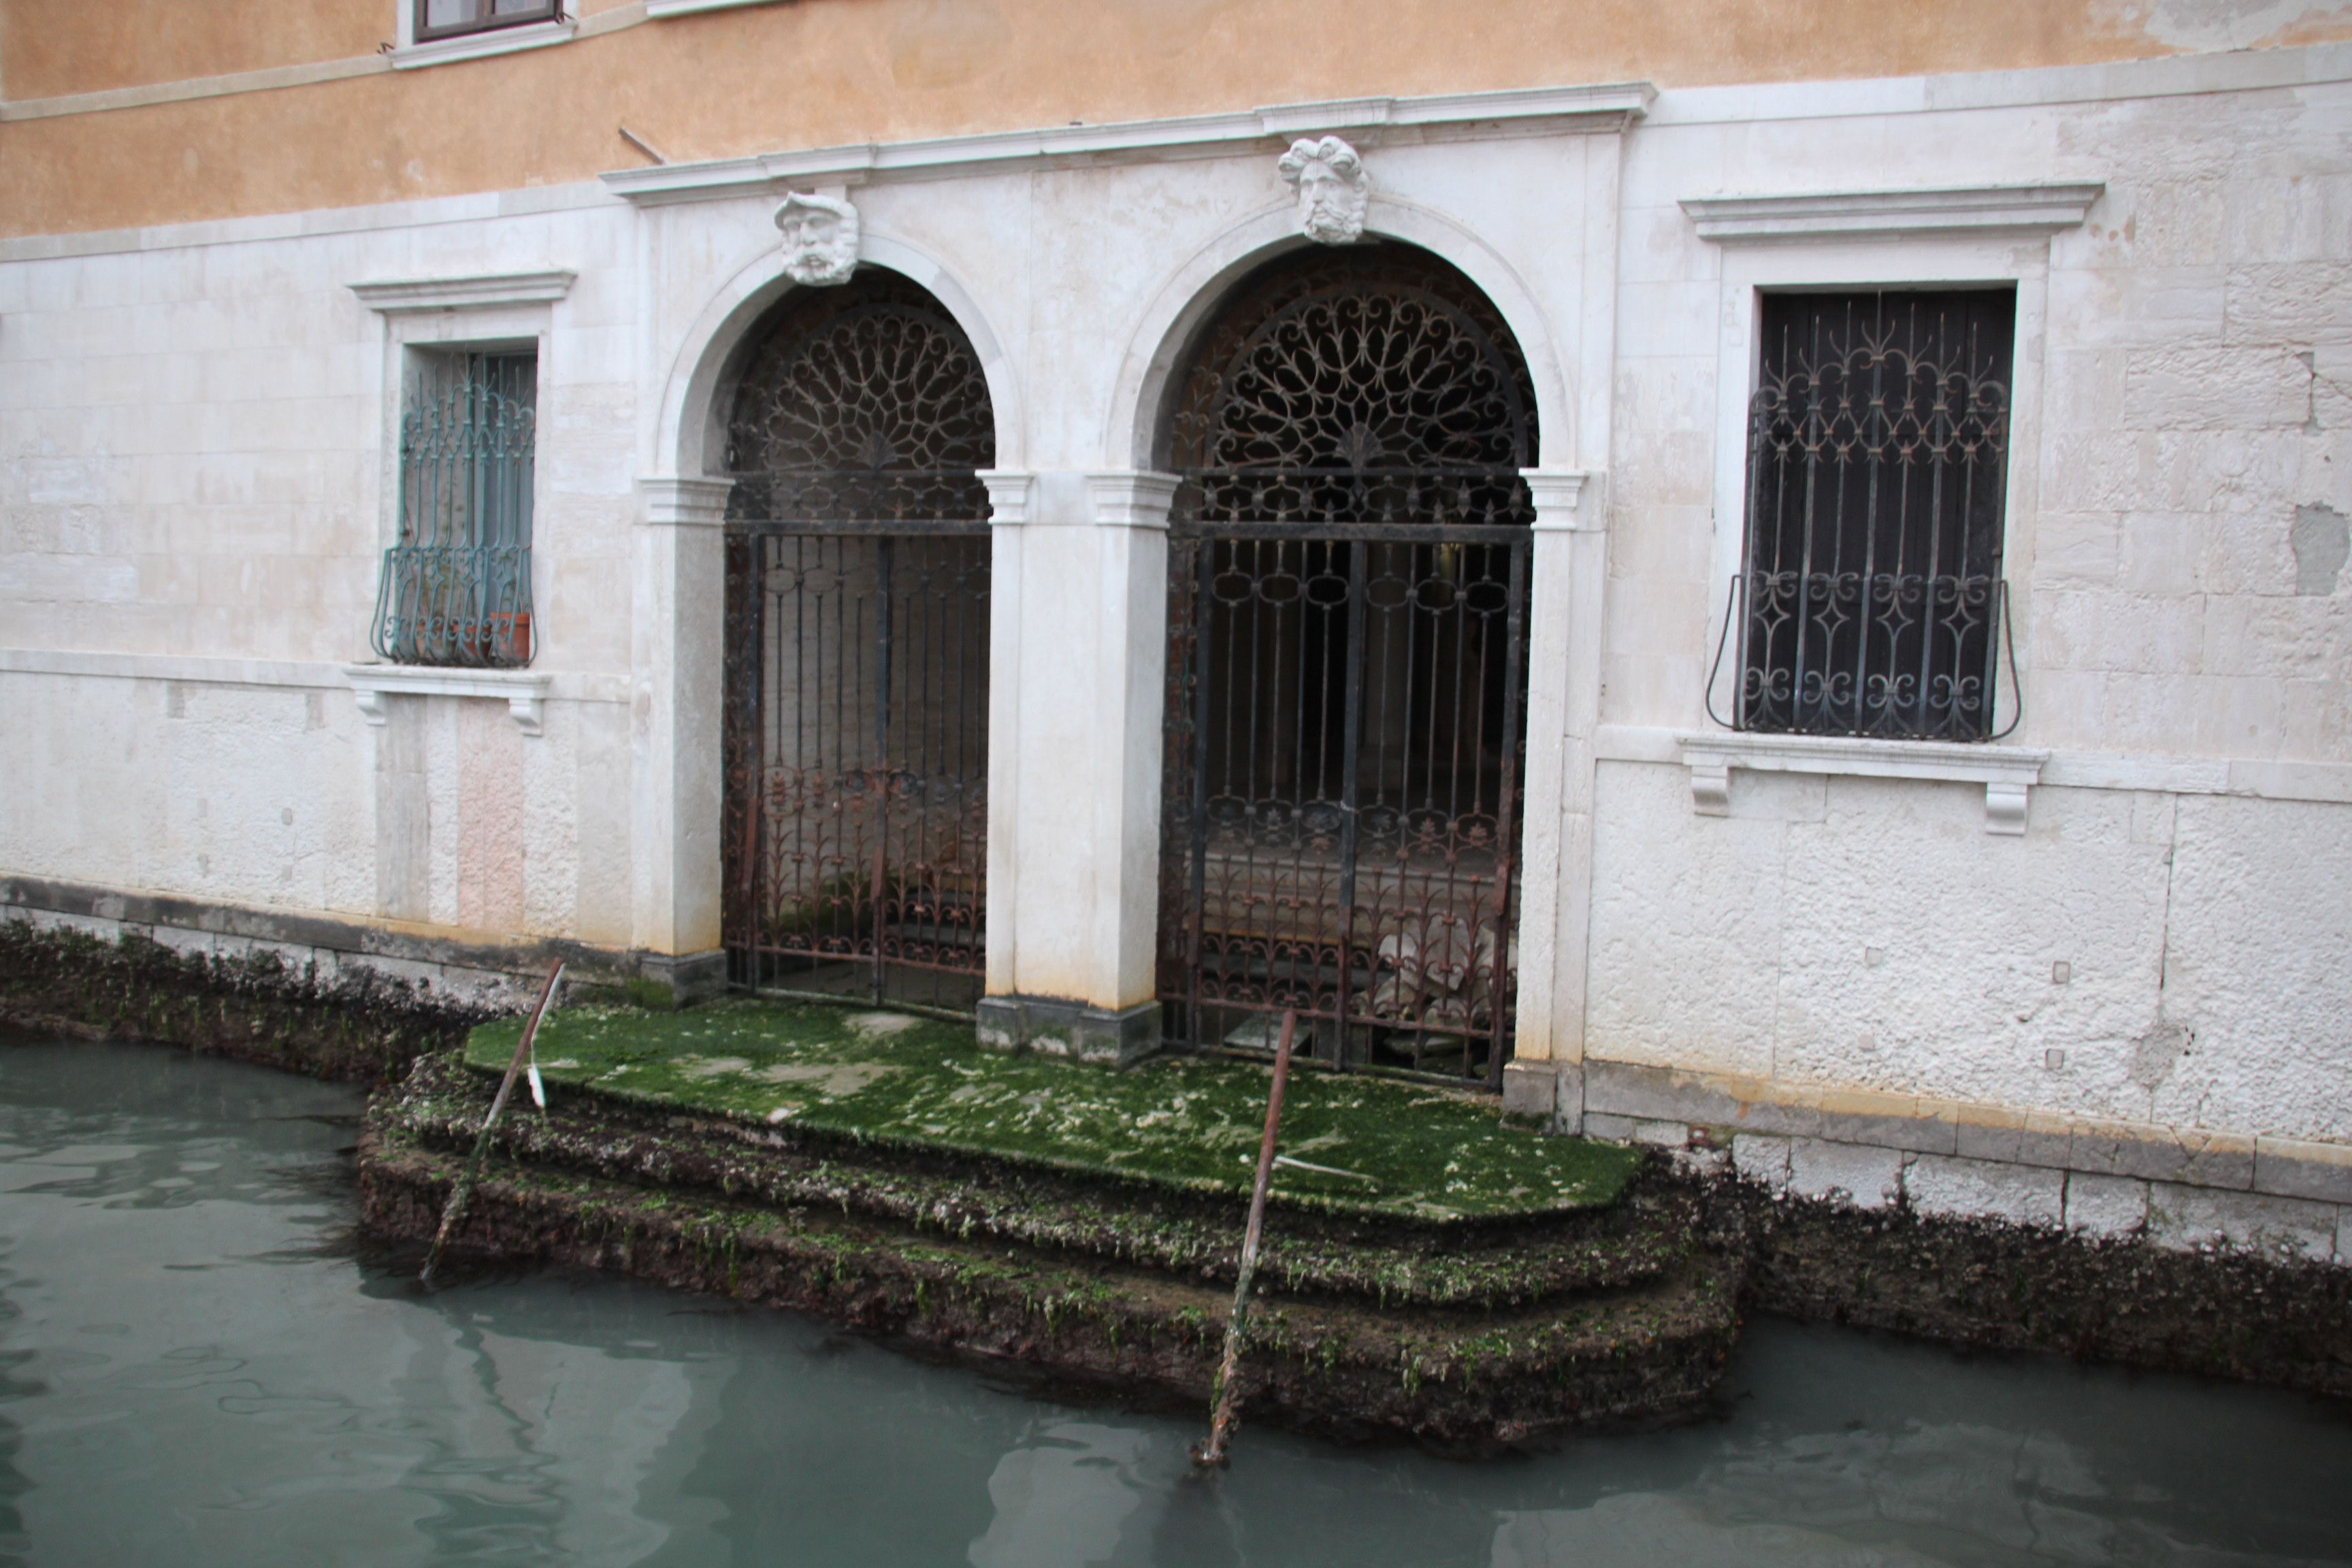 Low tide exposes the weed covered canal entrance steps to a palazzo